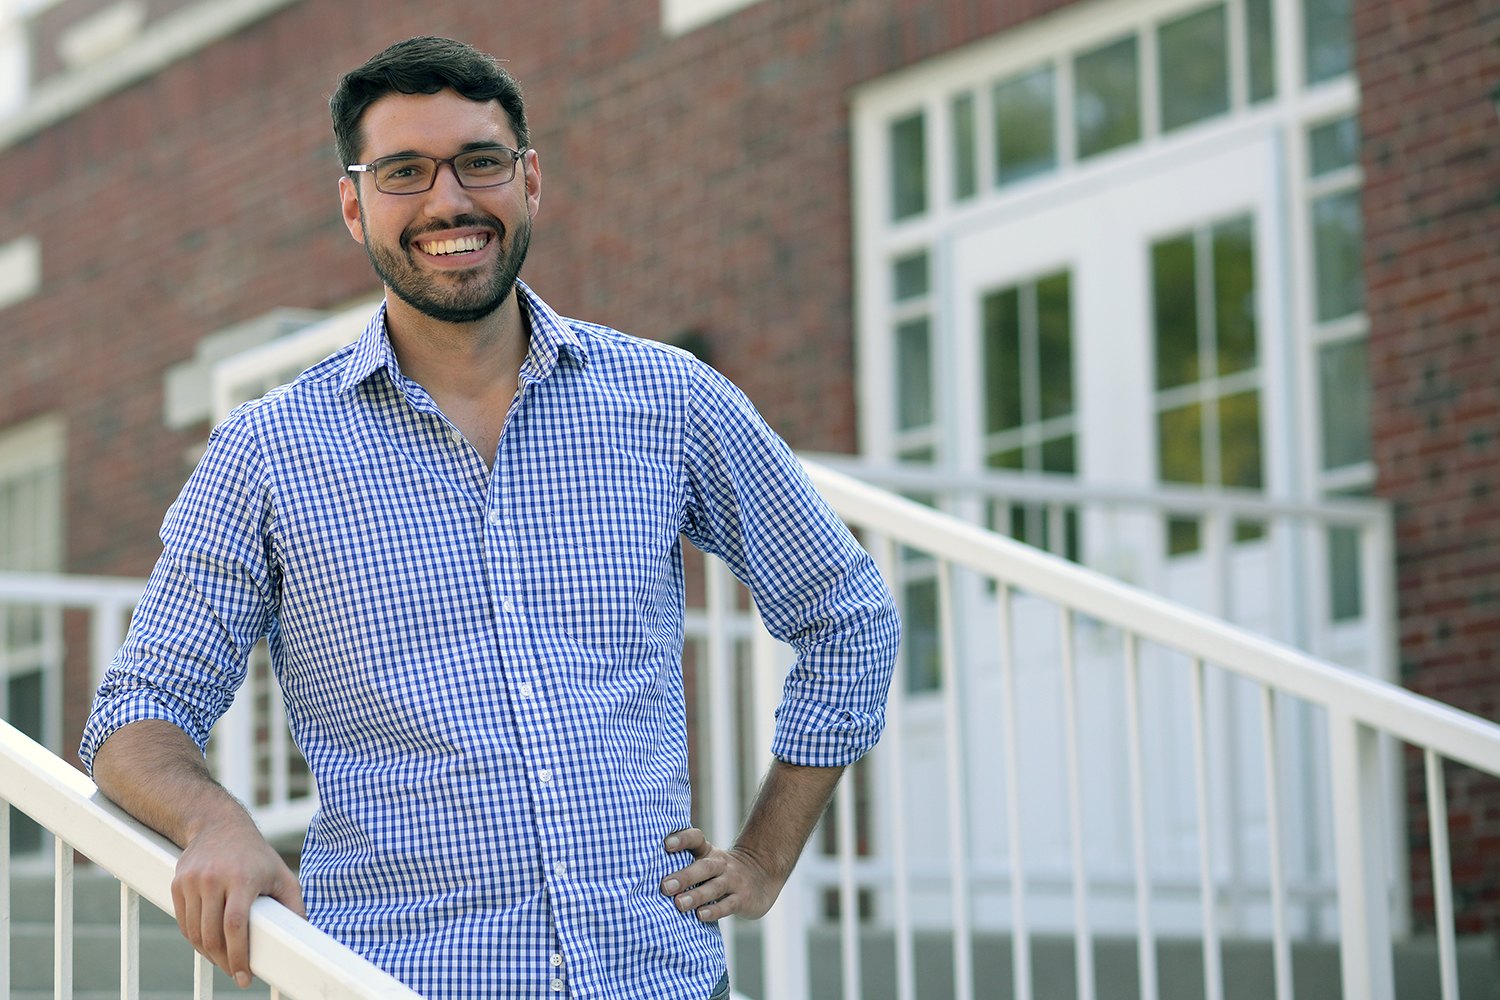 Assistant Professor of Government Yamil Velez's expertise lies at the intersection of psychology and political science.